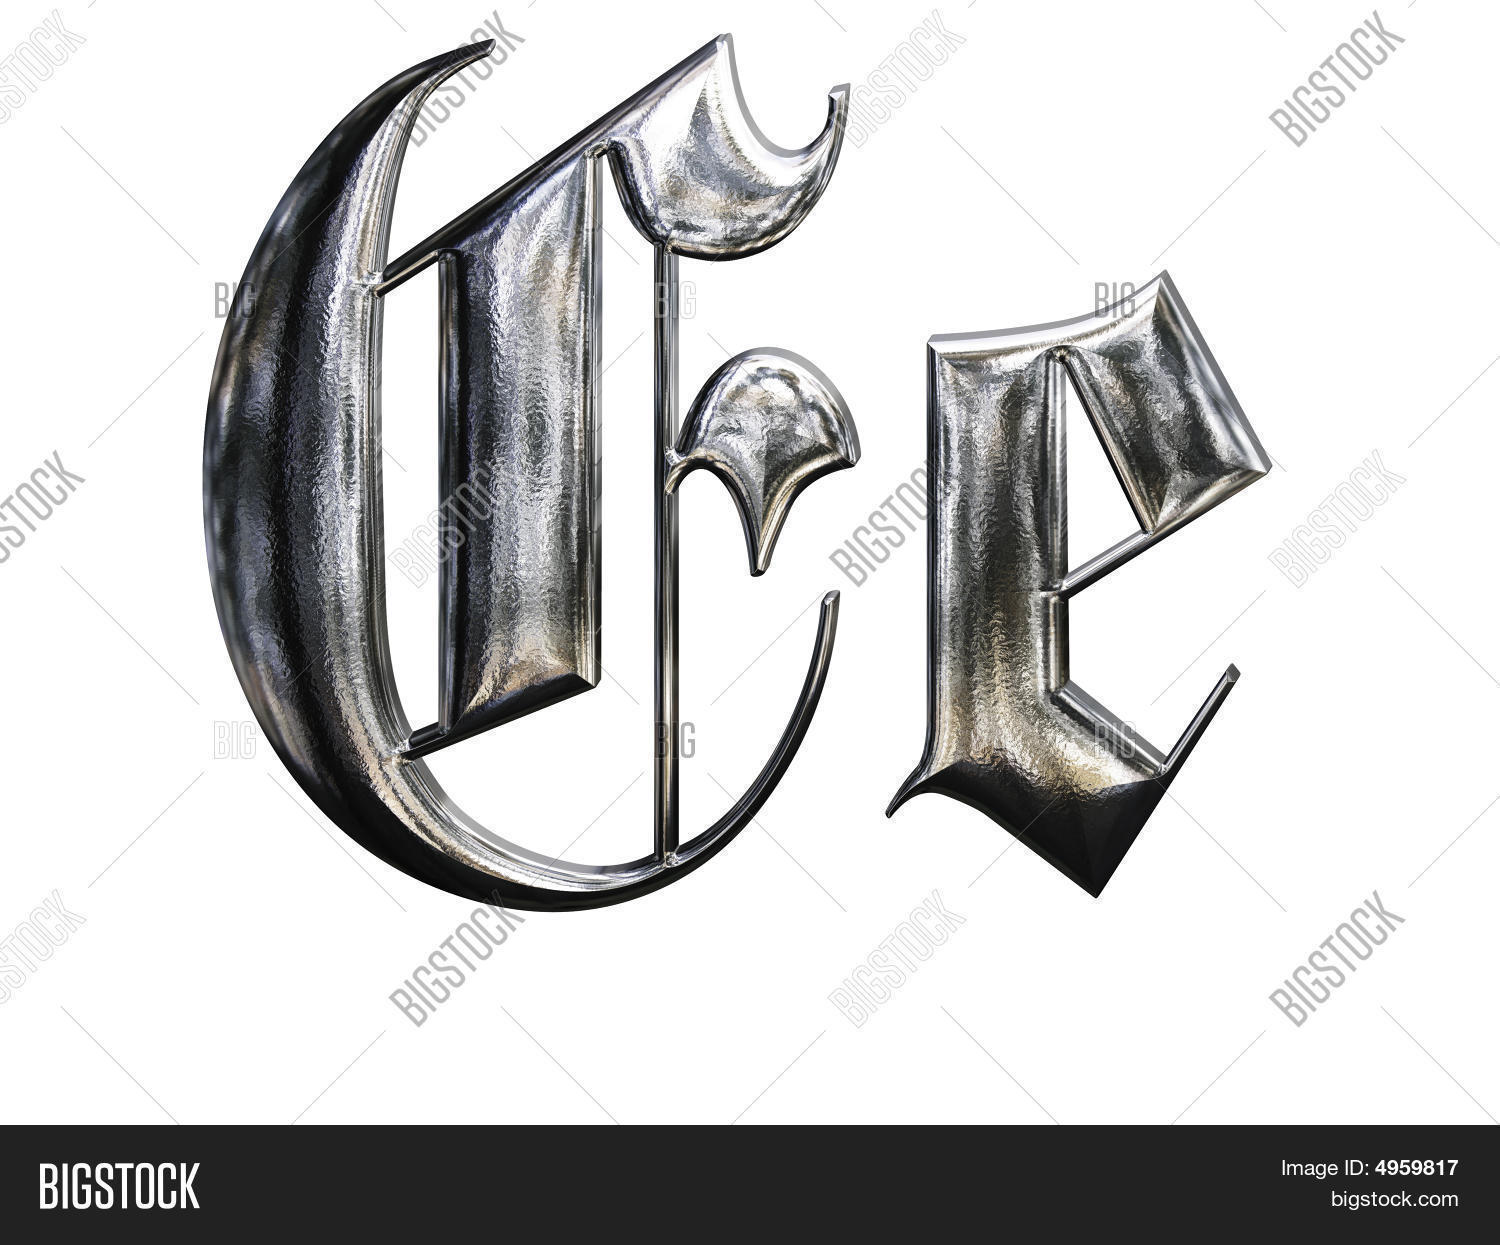 Metallic Patterned Letter Of German Gothic Alphabet Font E